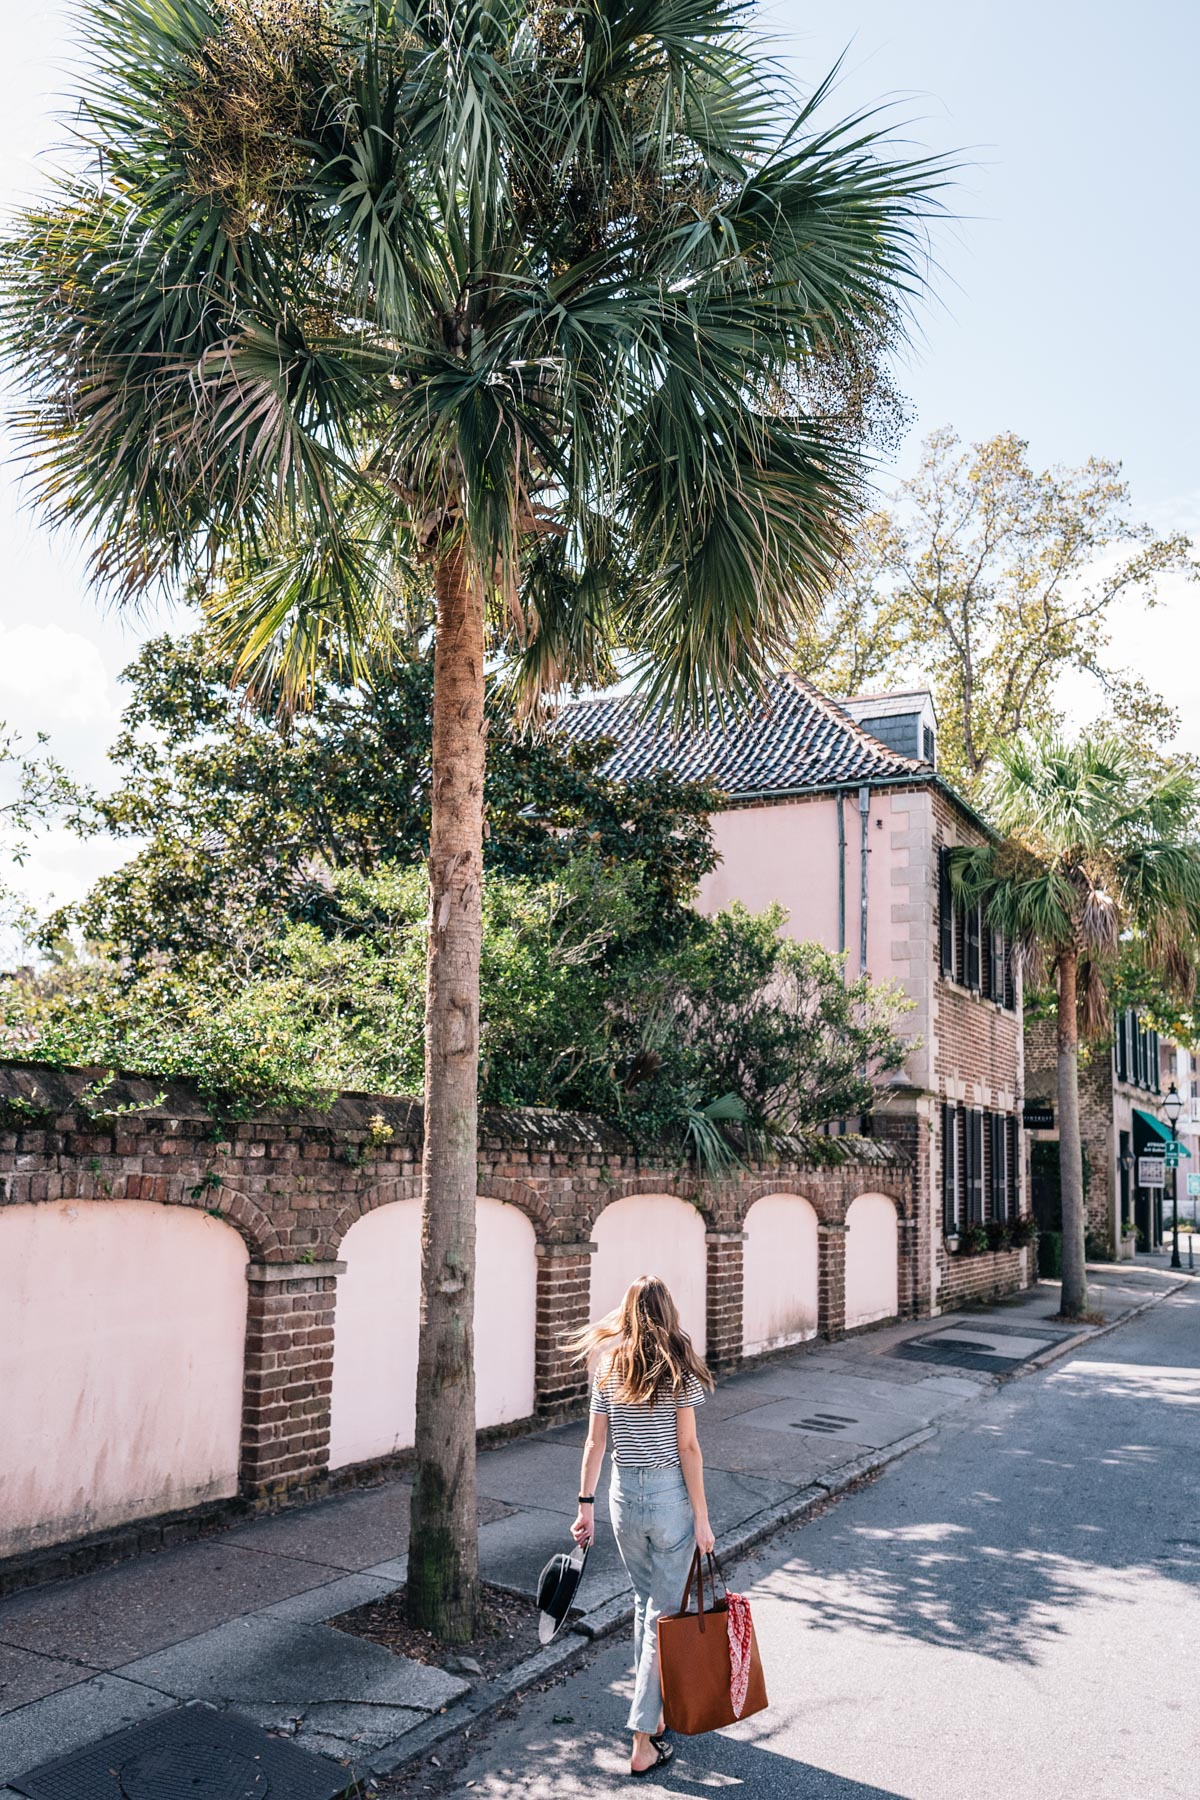 Jess Ann Kirby visits South of Broad in Charleston South Carolina